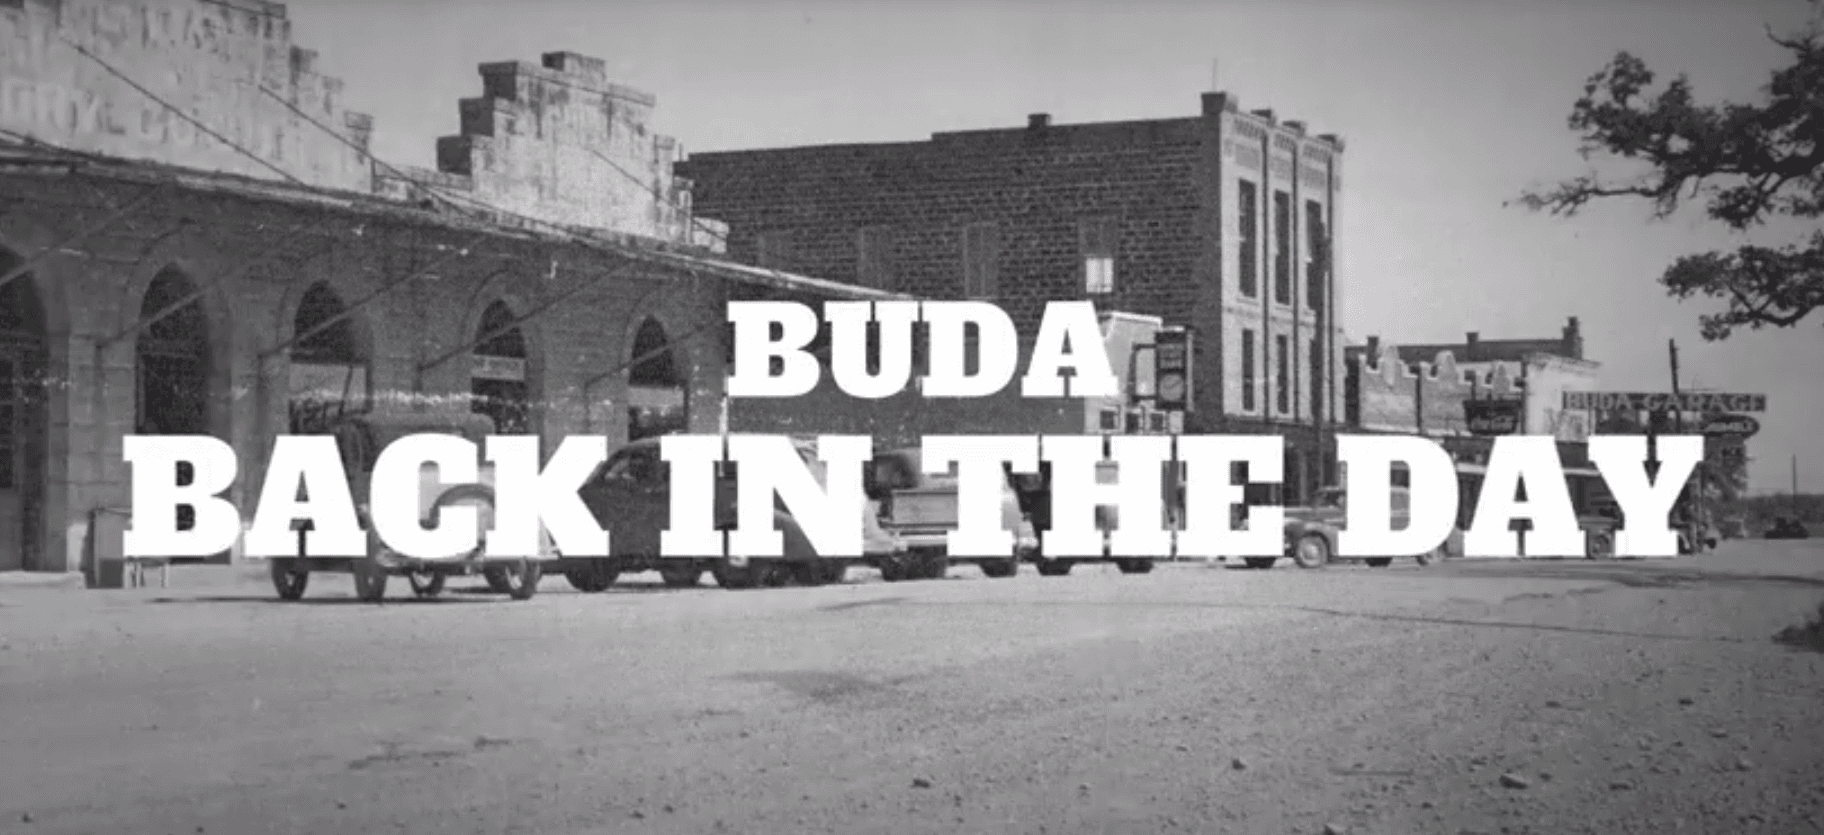 buda back in the day - big picture pic